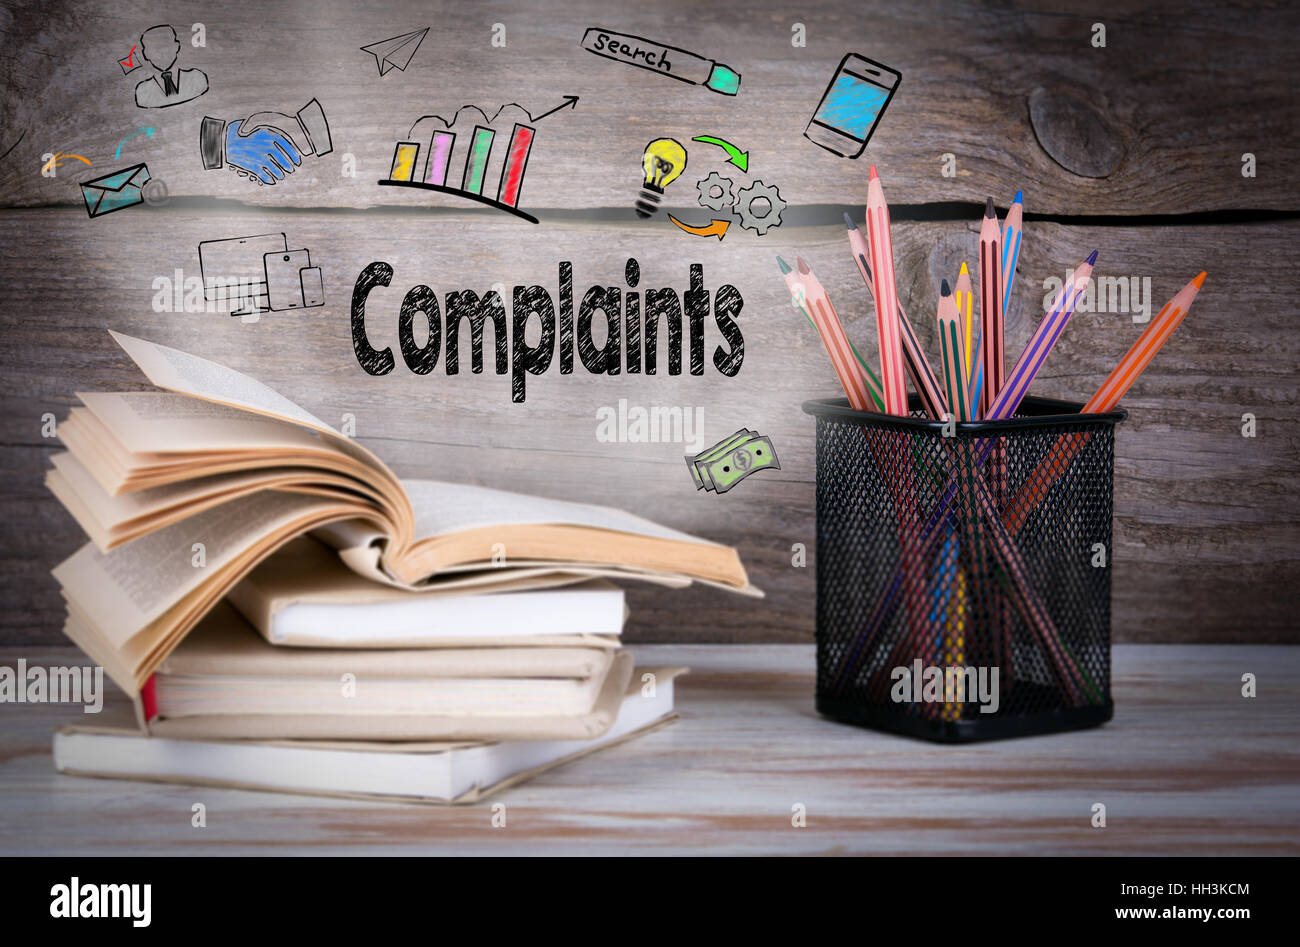 Complaints, Business Concept. Stack of books and pencils on the wooden table. - Stock Image